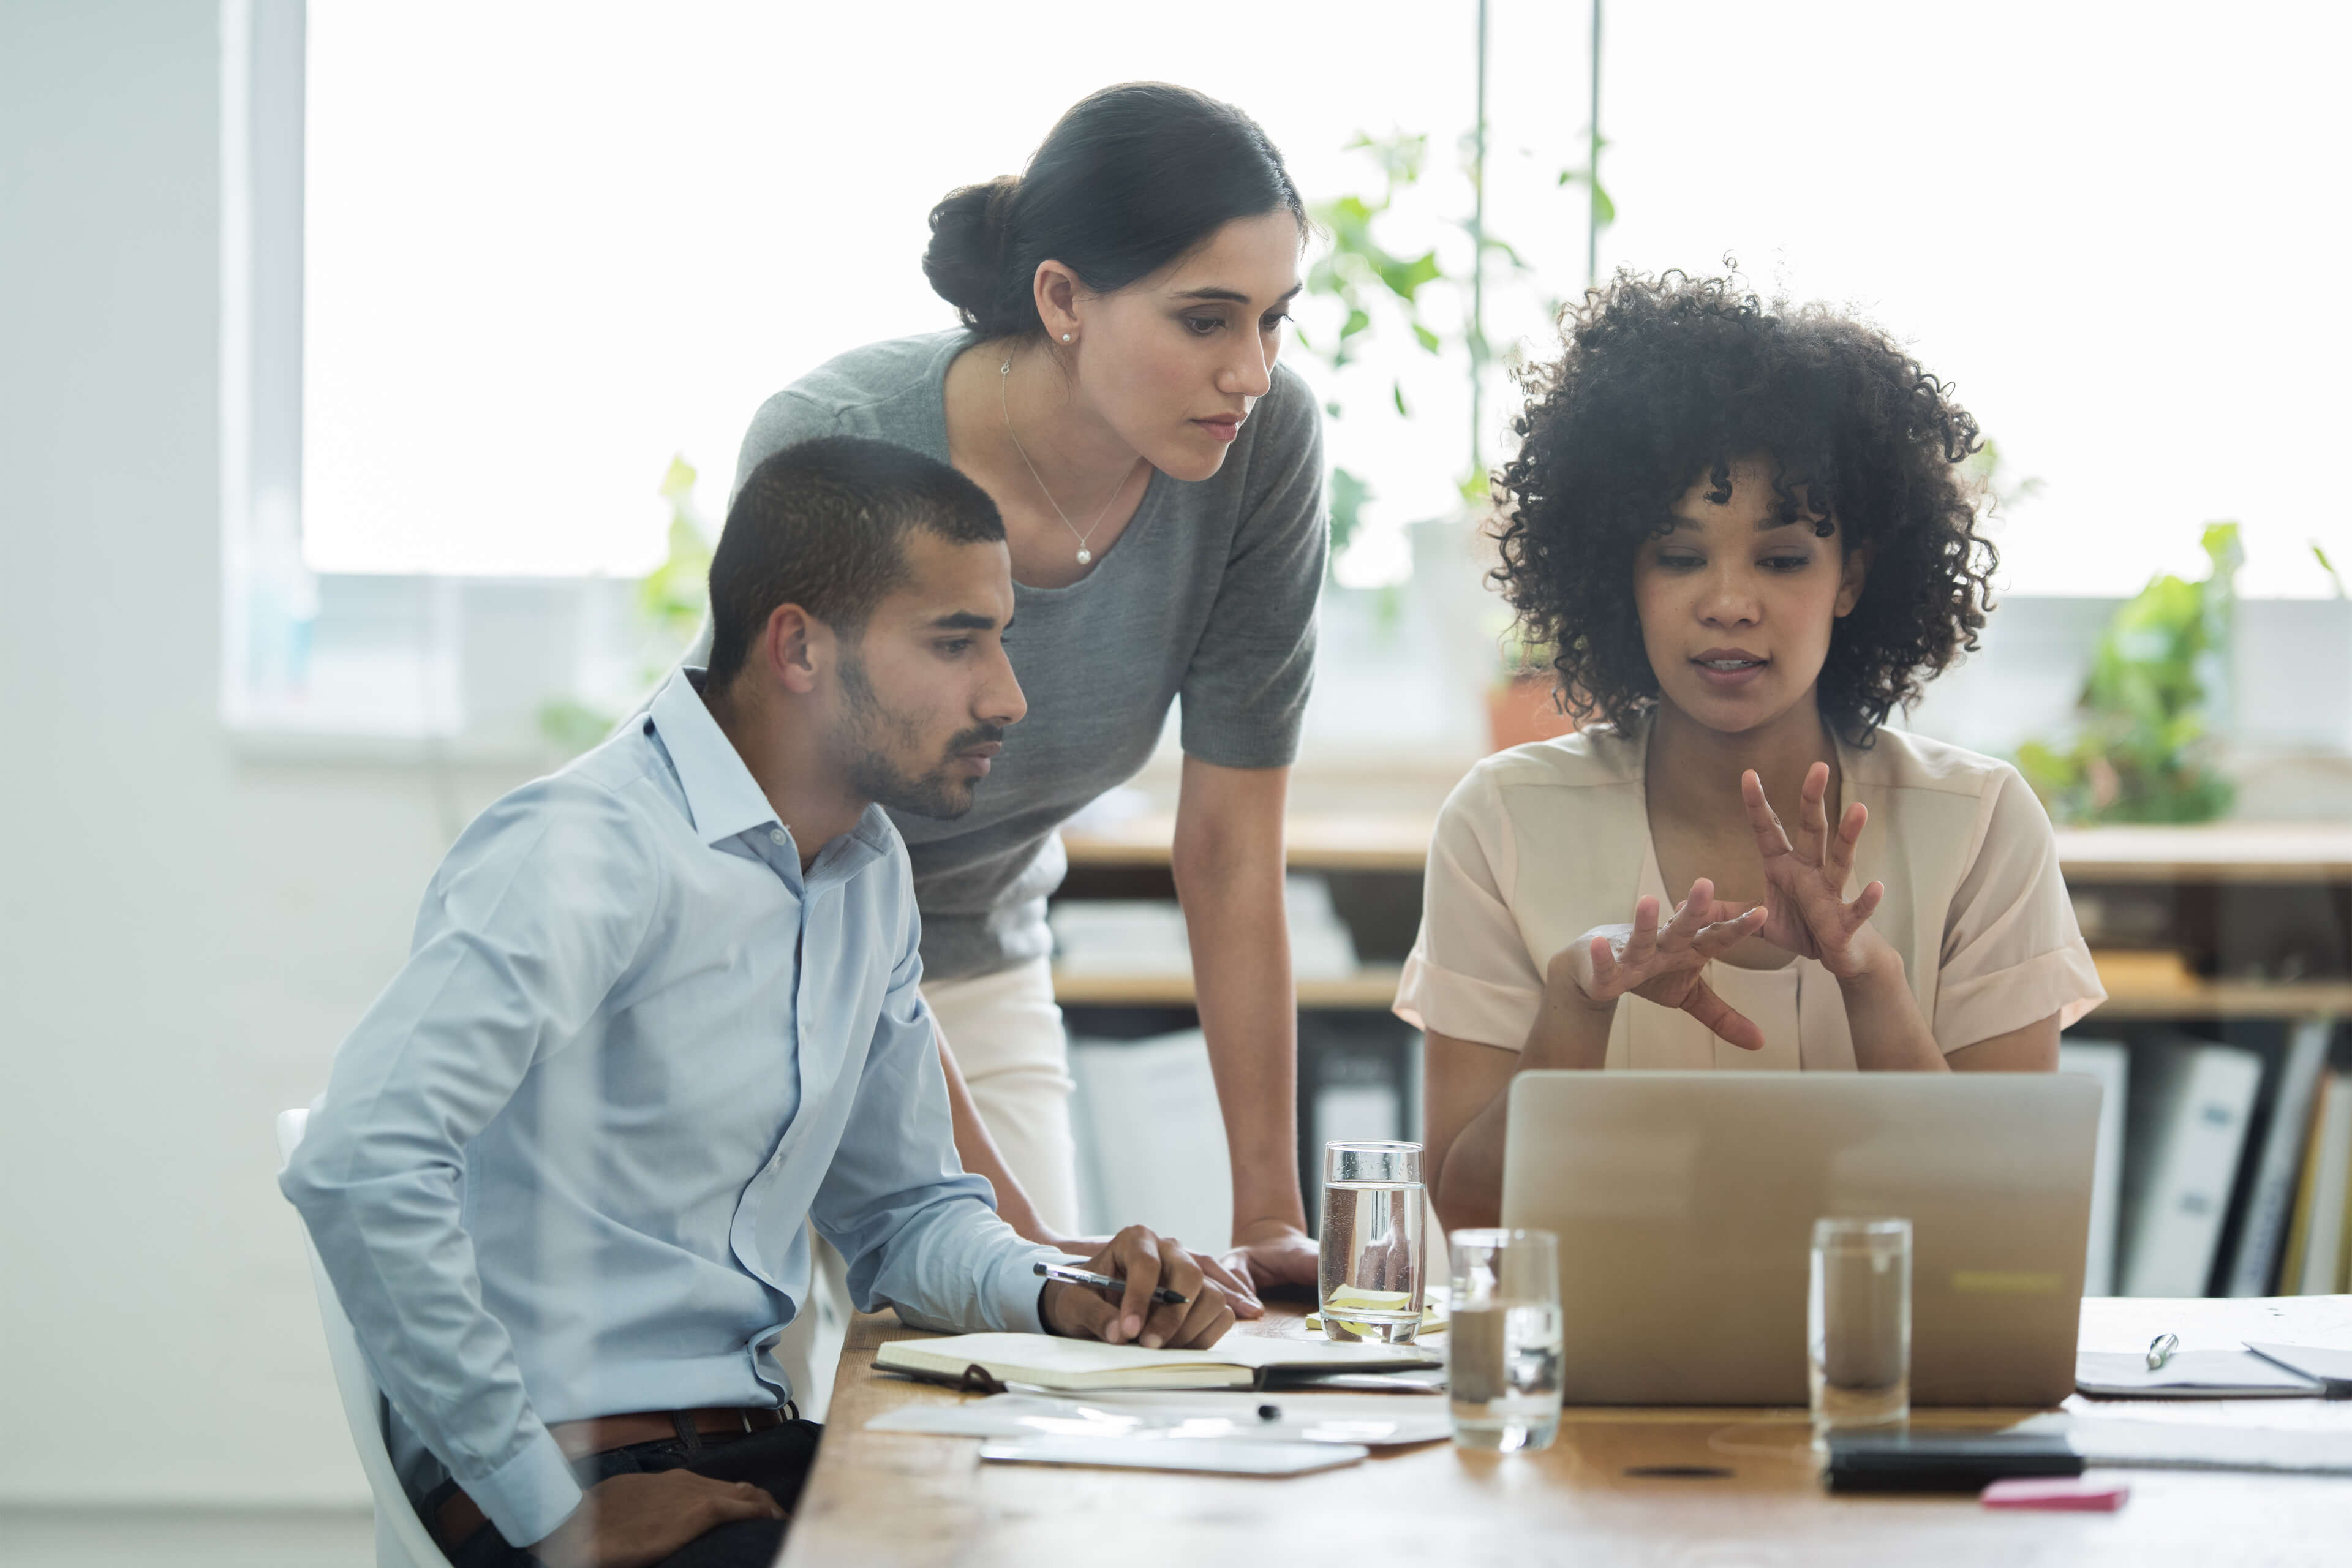 Gender diverse team working together in an office space